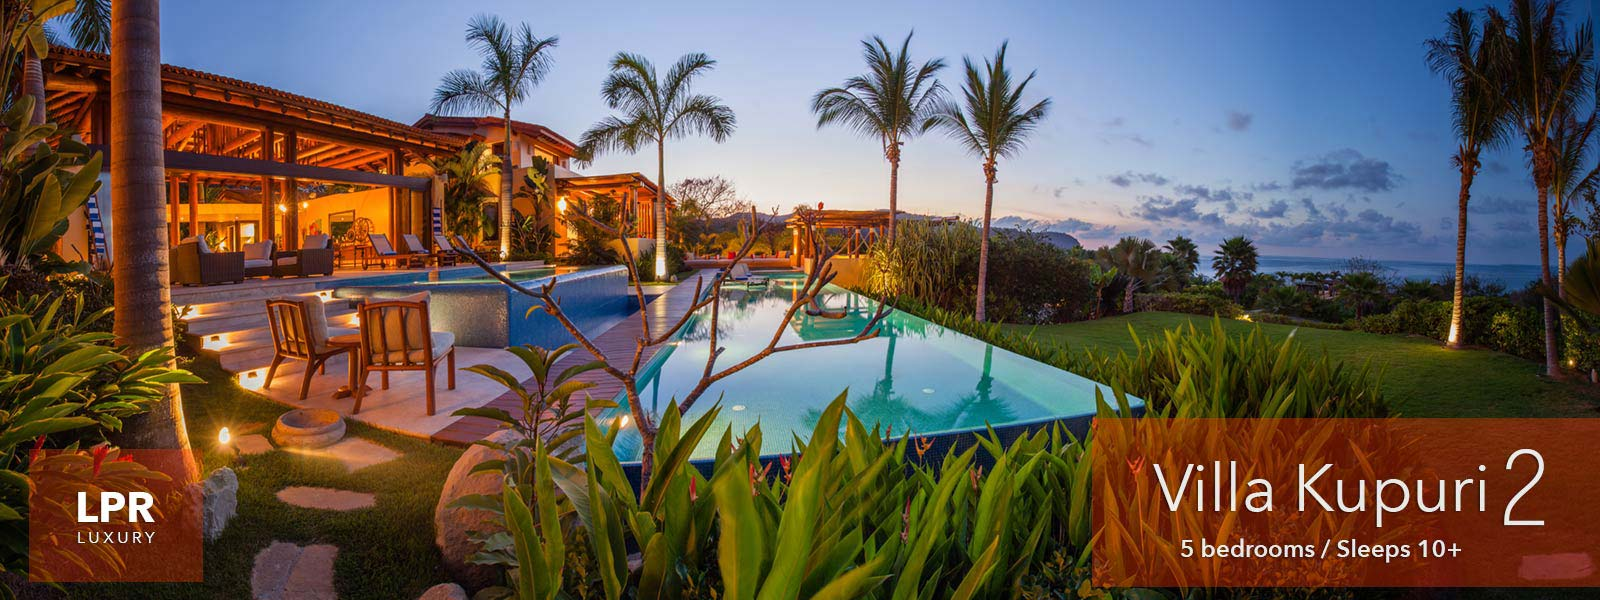 kupuri punta mita - mexico - luxury real estate